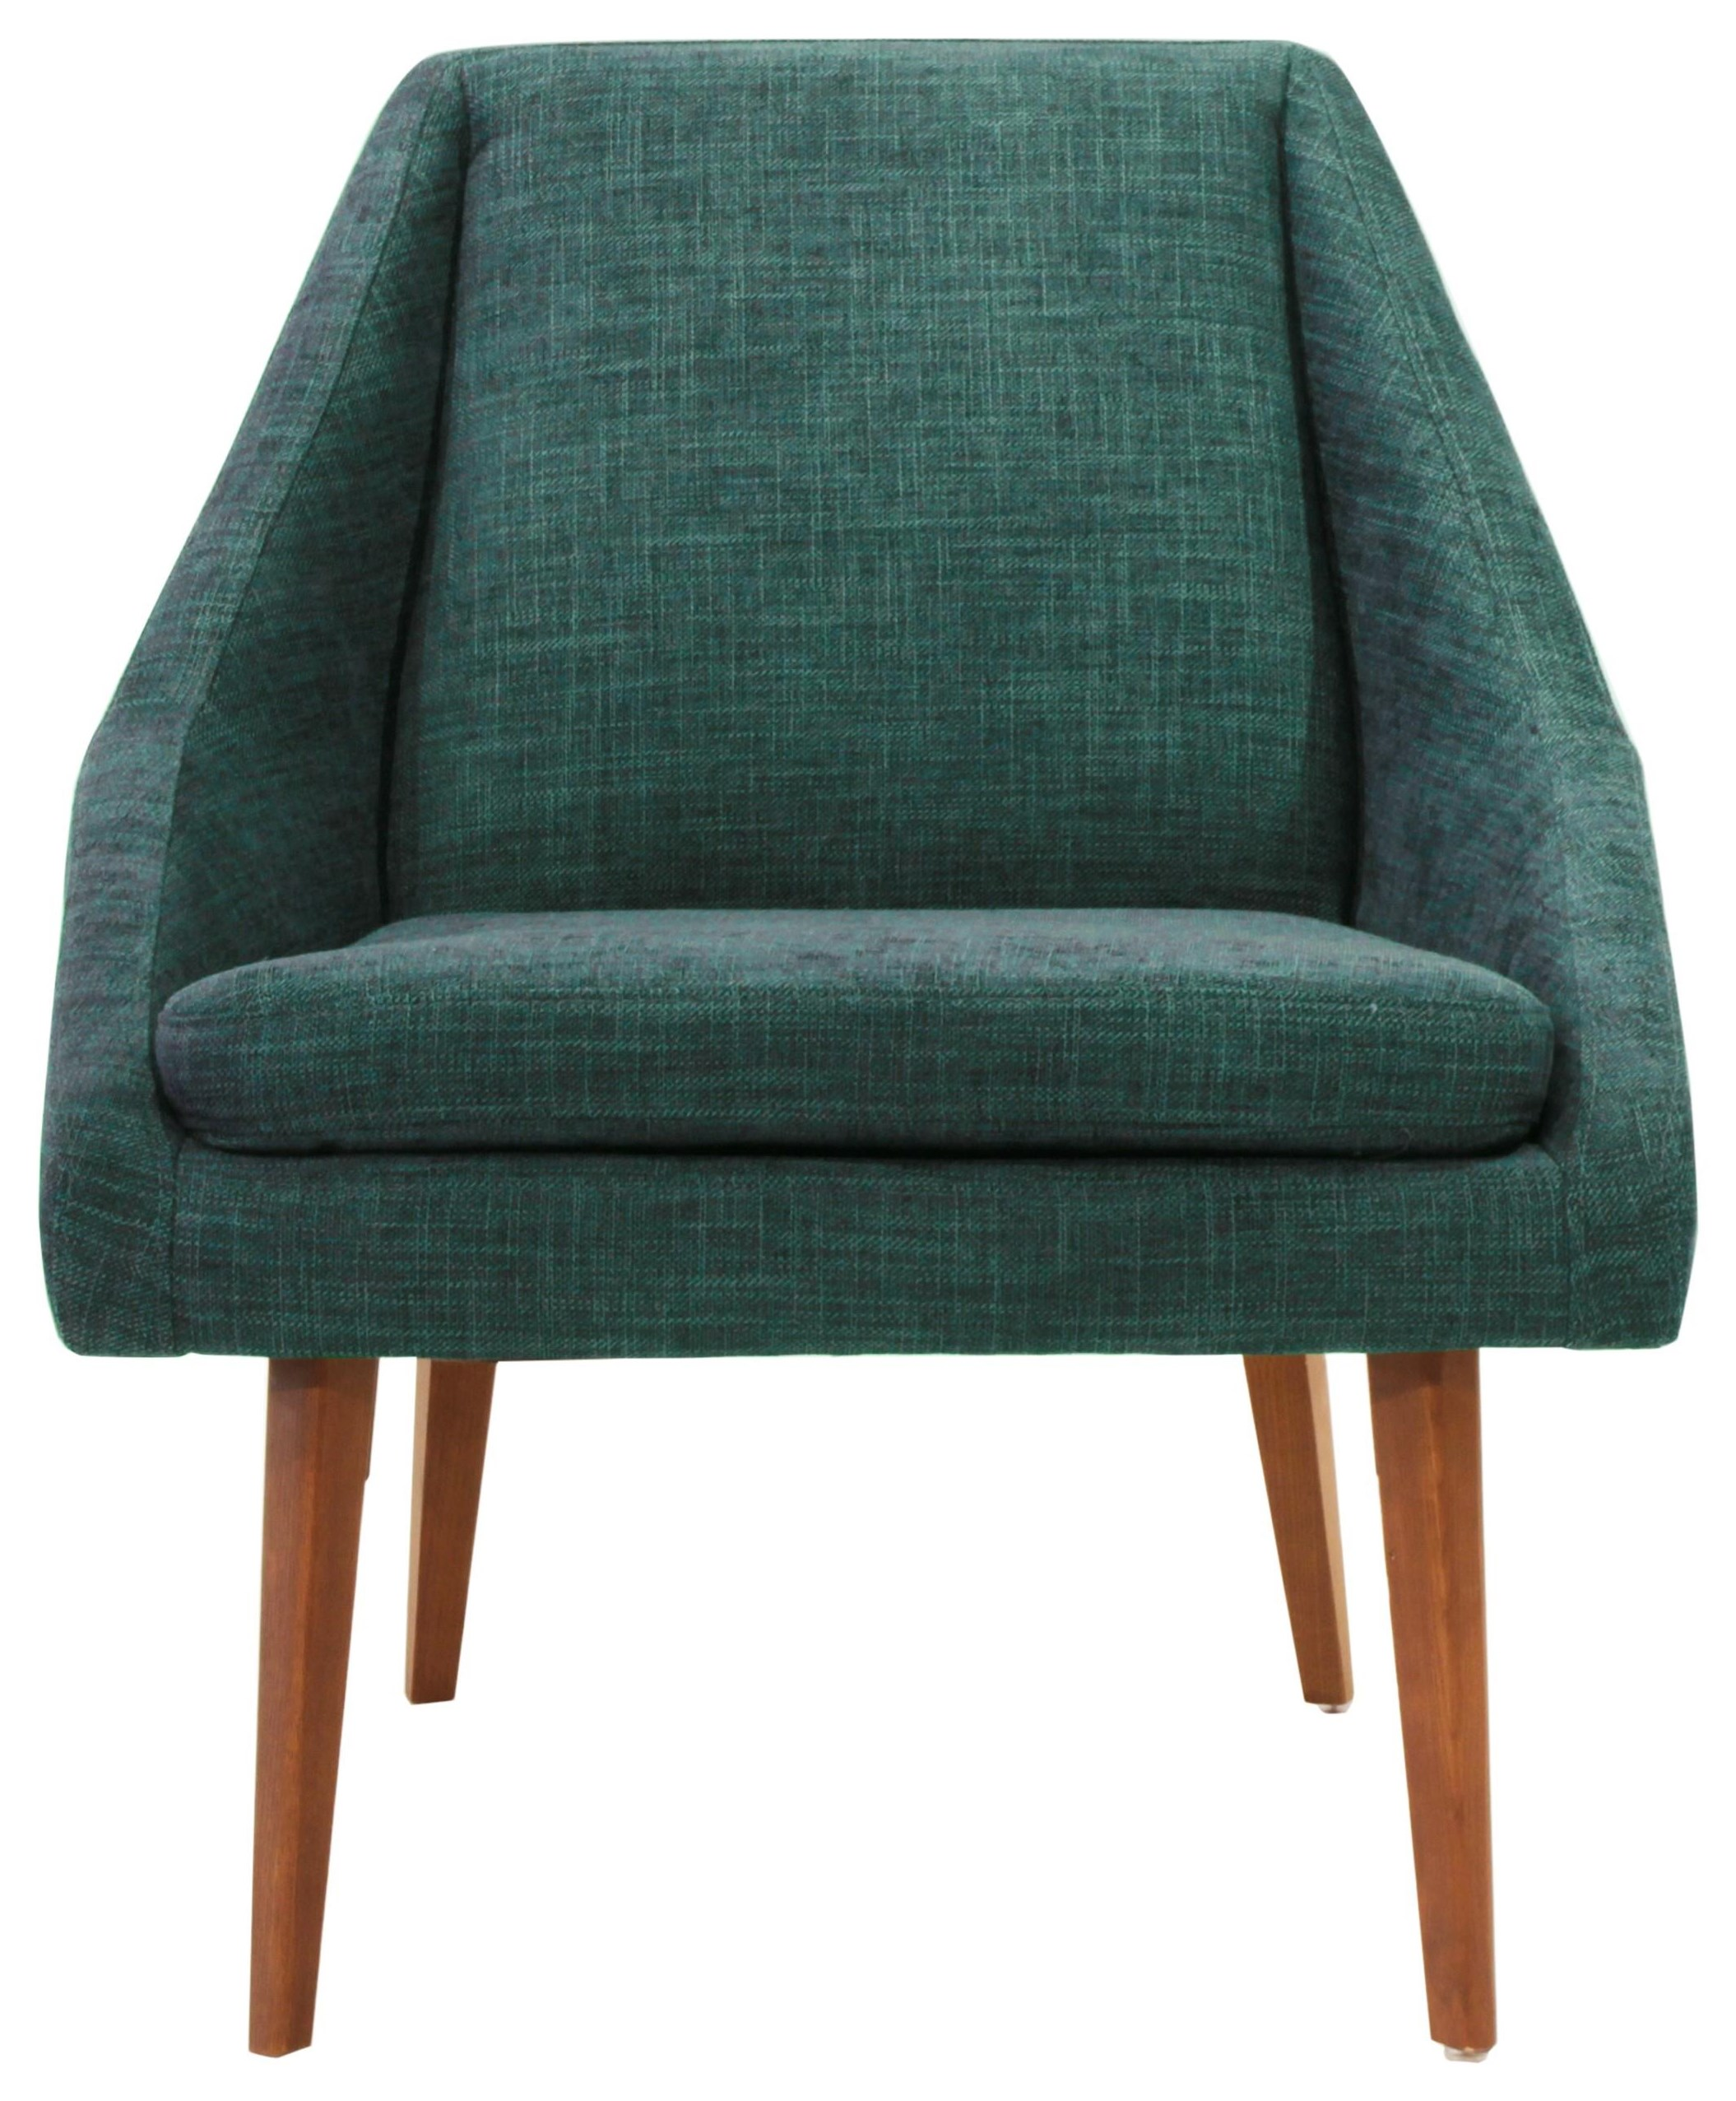 Lark Chair by Urban Chic at Red Knot